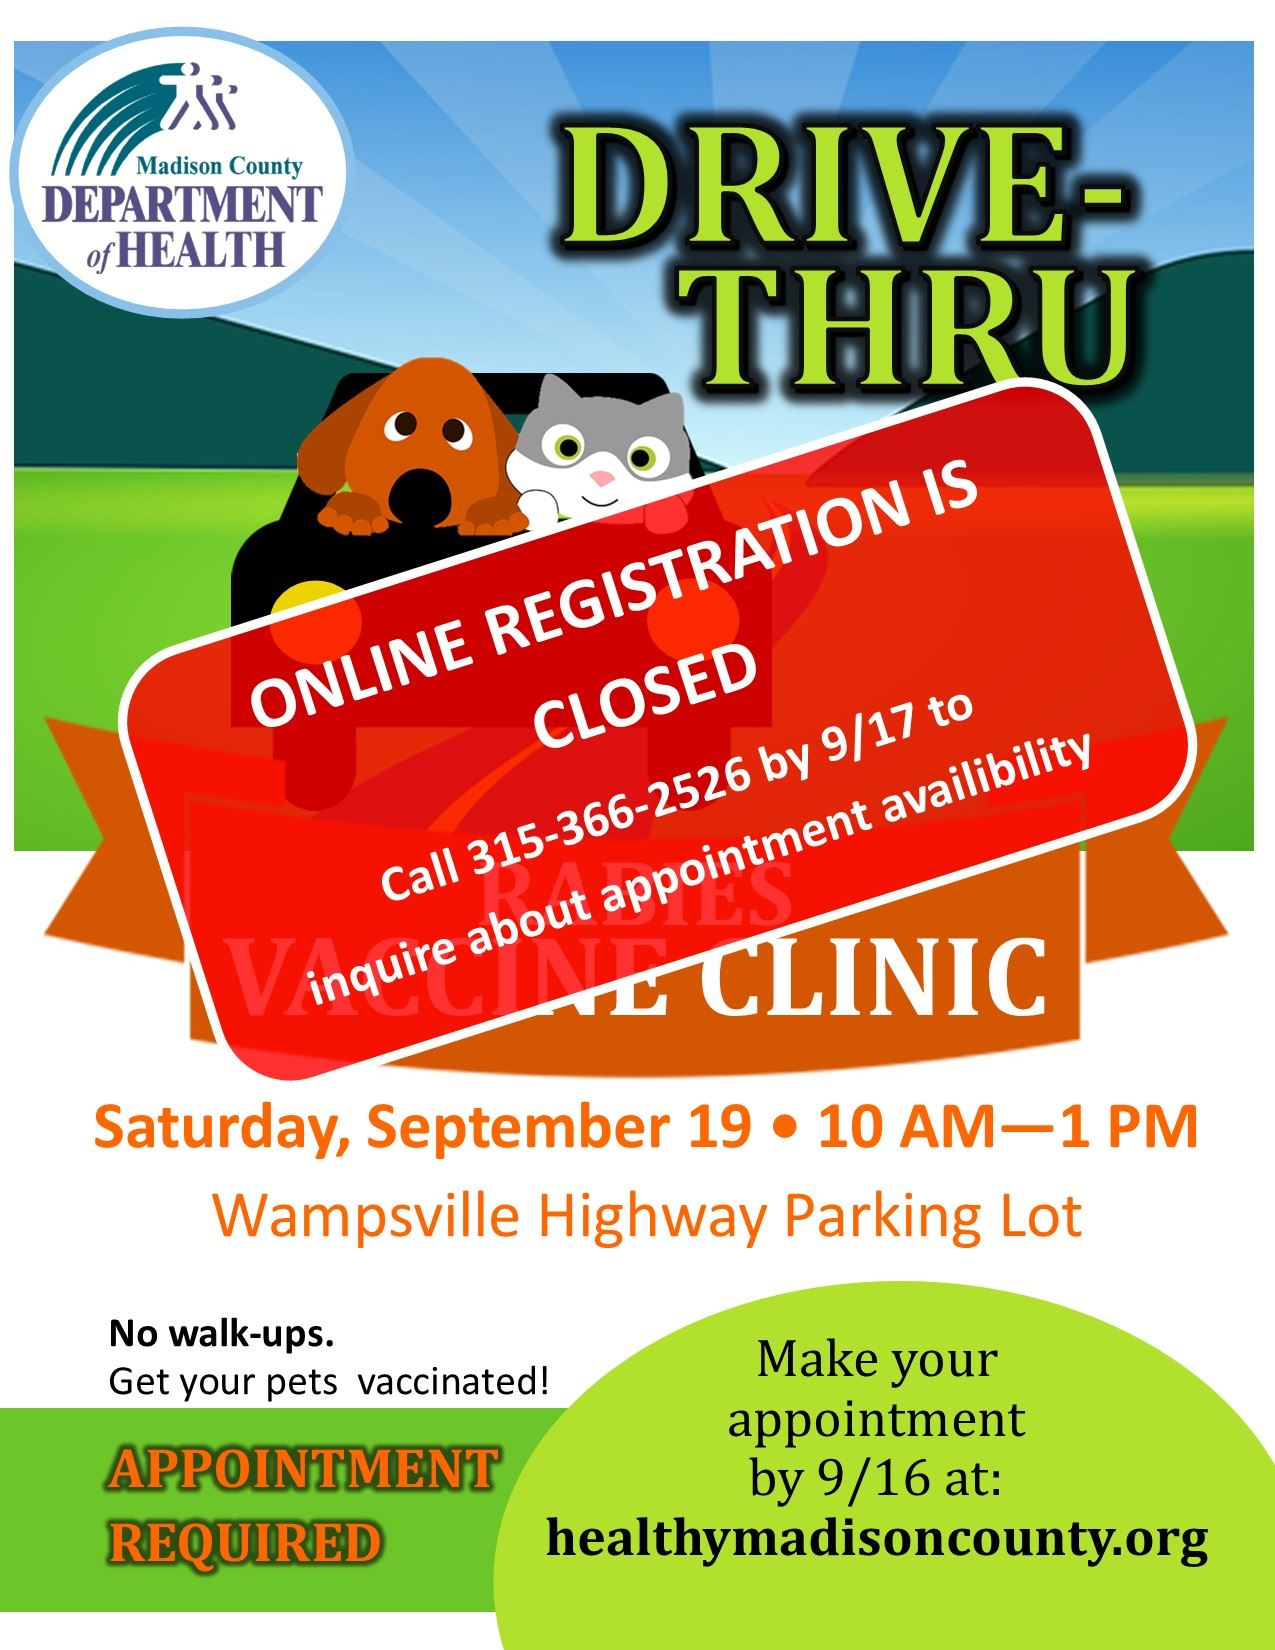 September 19th Drive-Thru Rabies Clinic Flyer